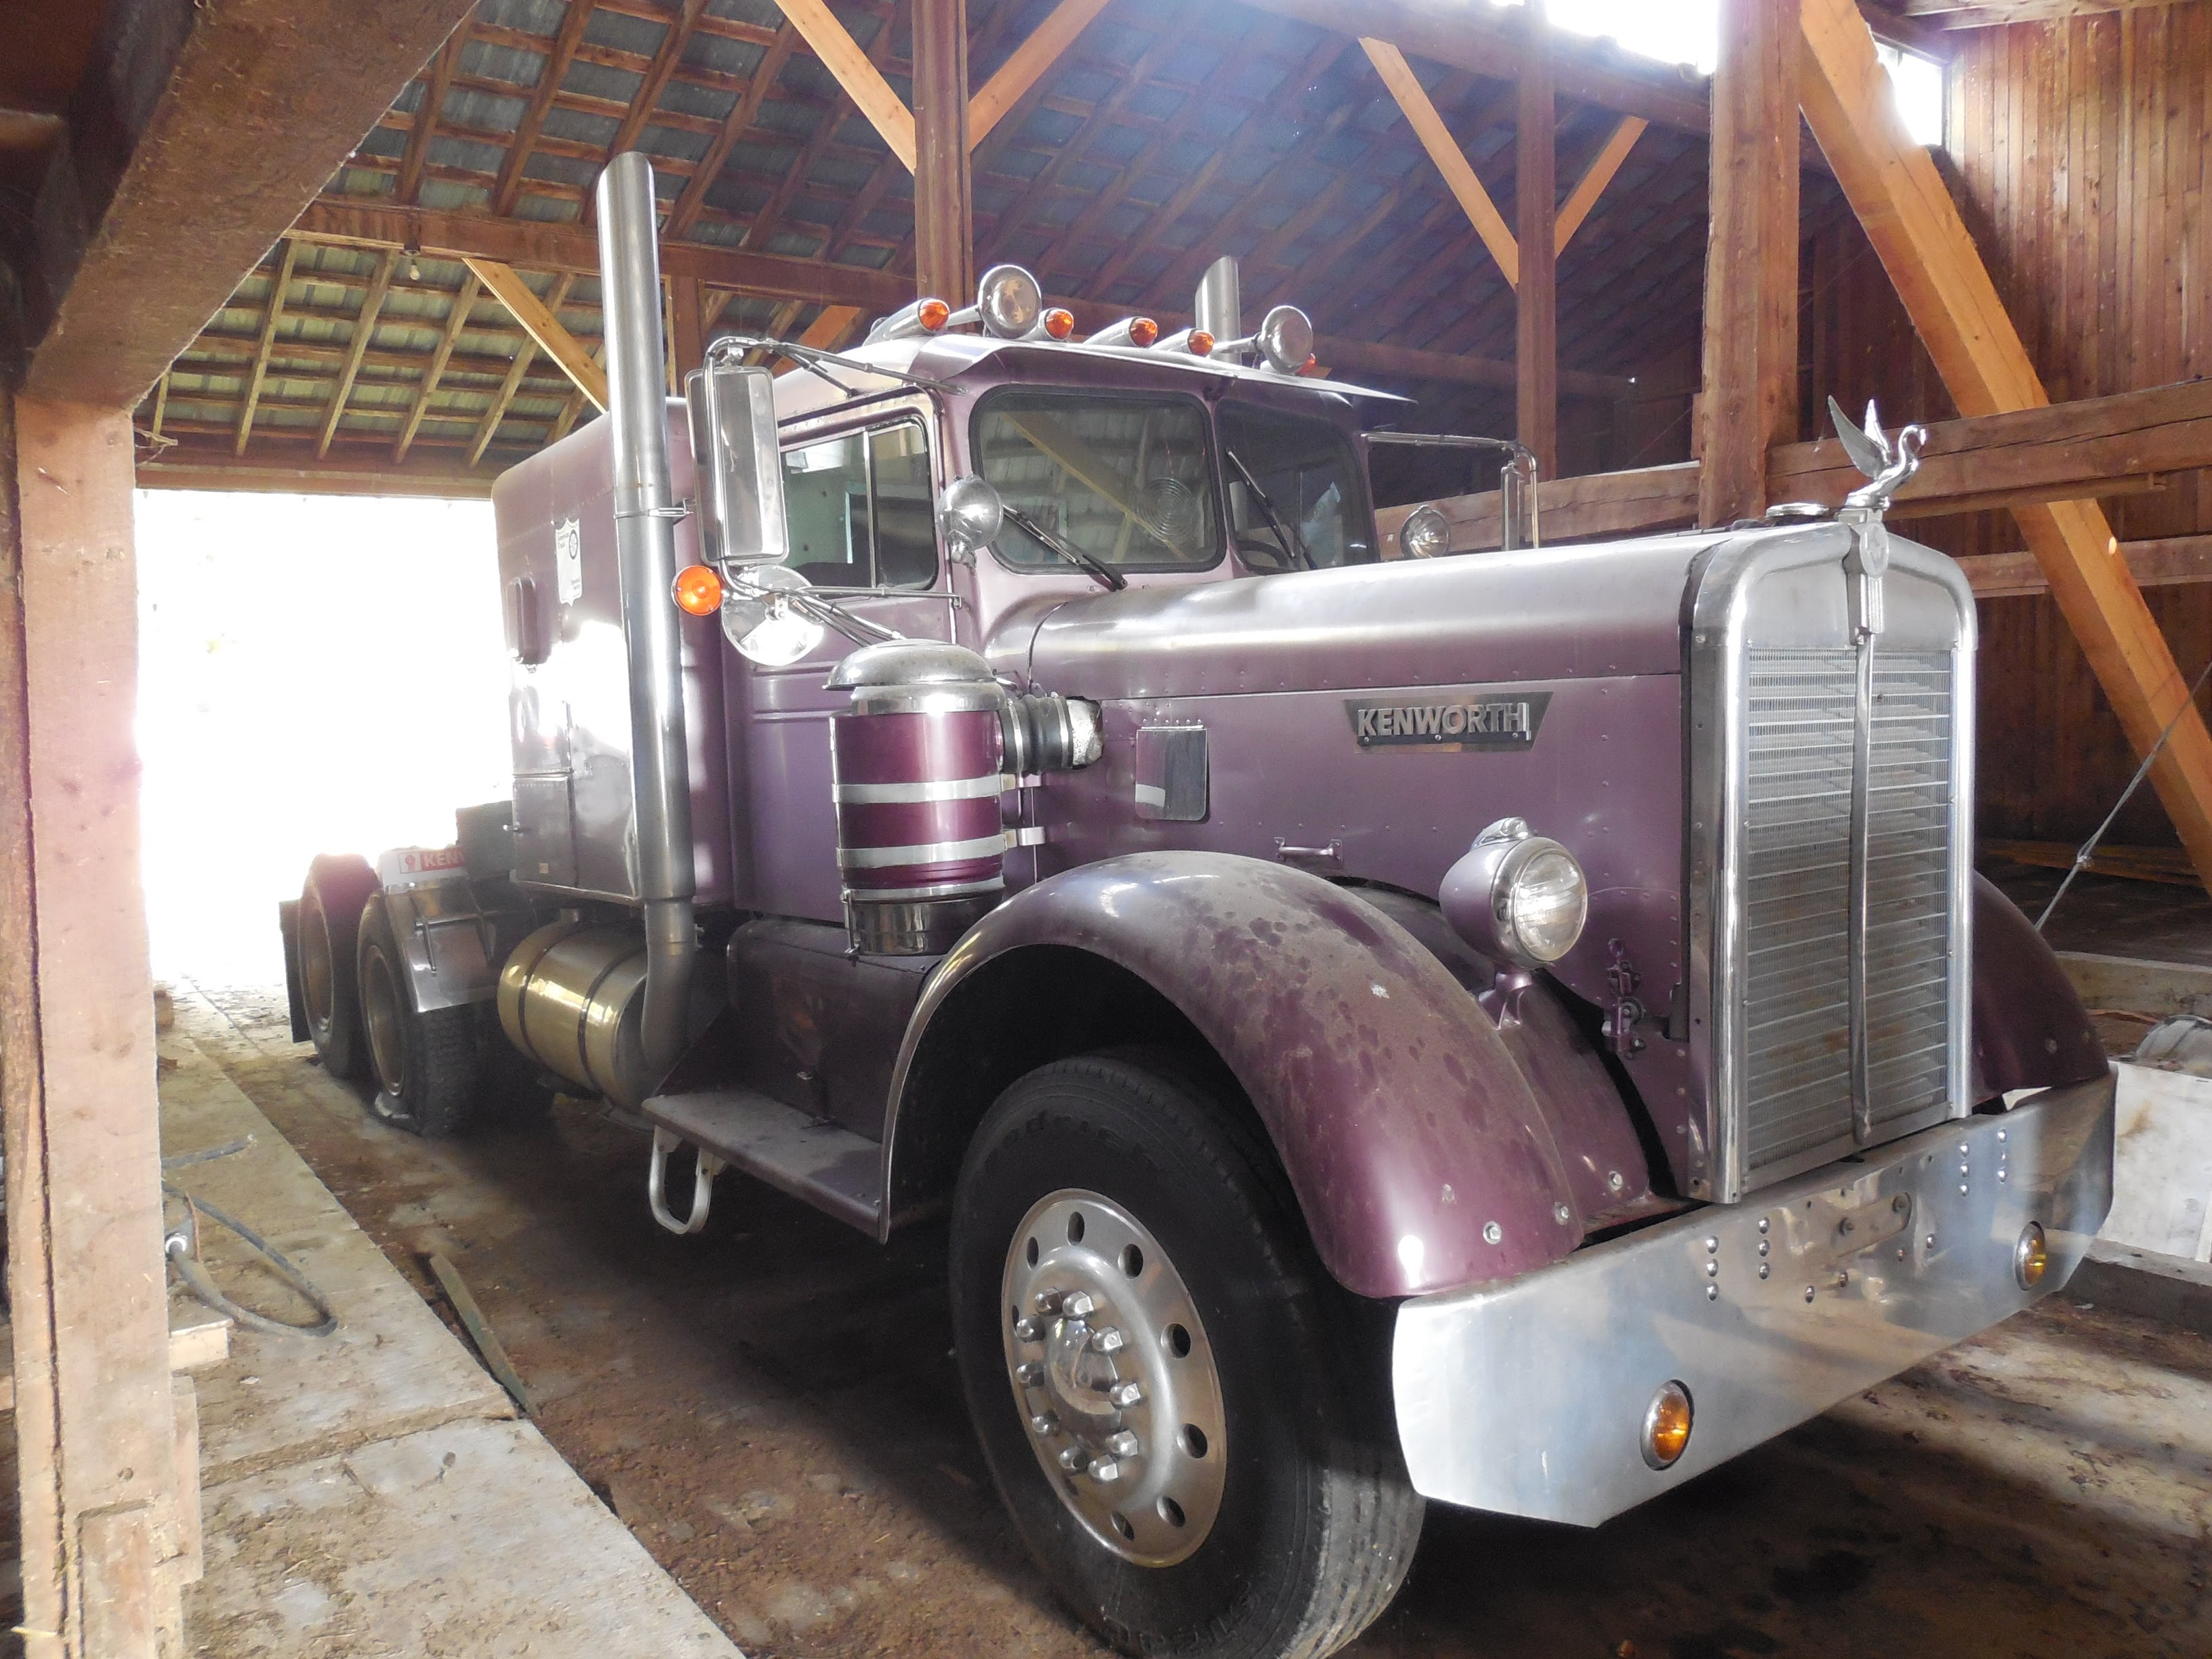 This Incredible Kenworth Truck Is An Awesome Barn Find That Tops All Other Finds